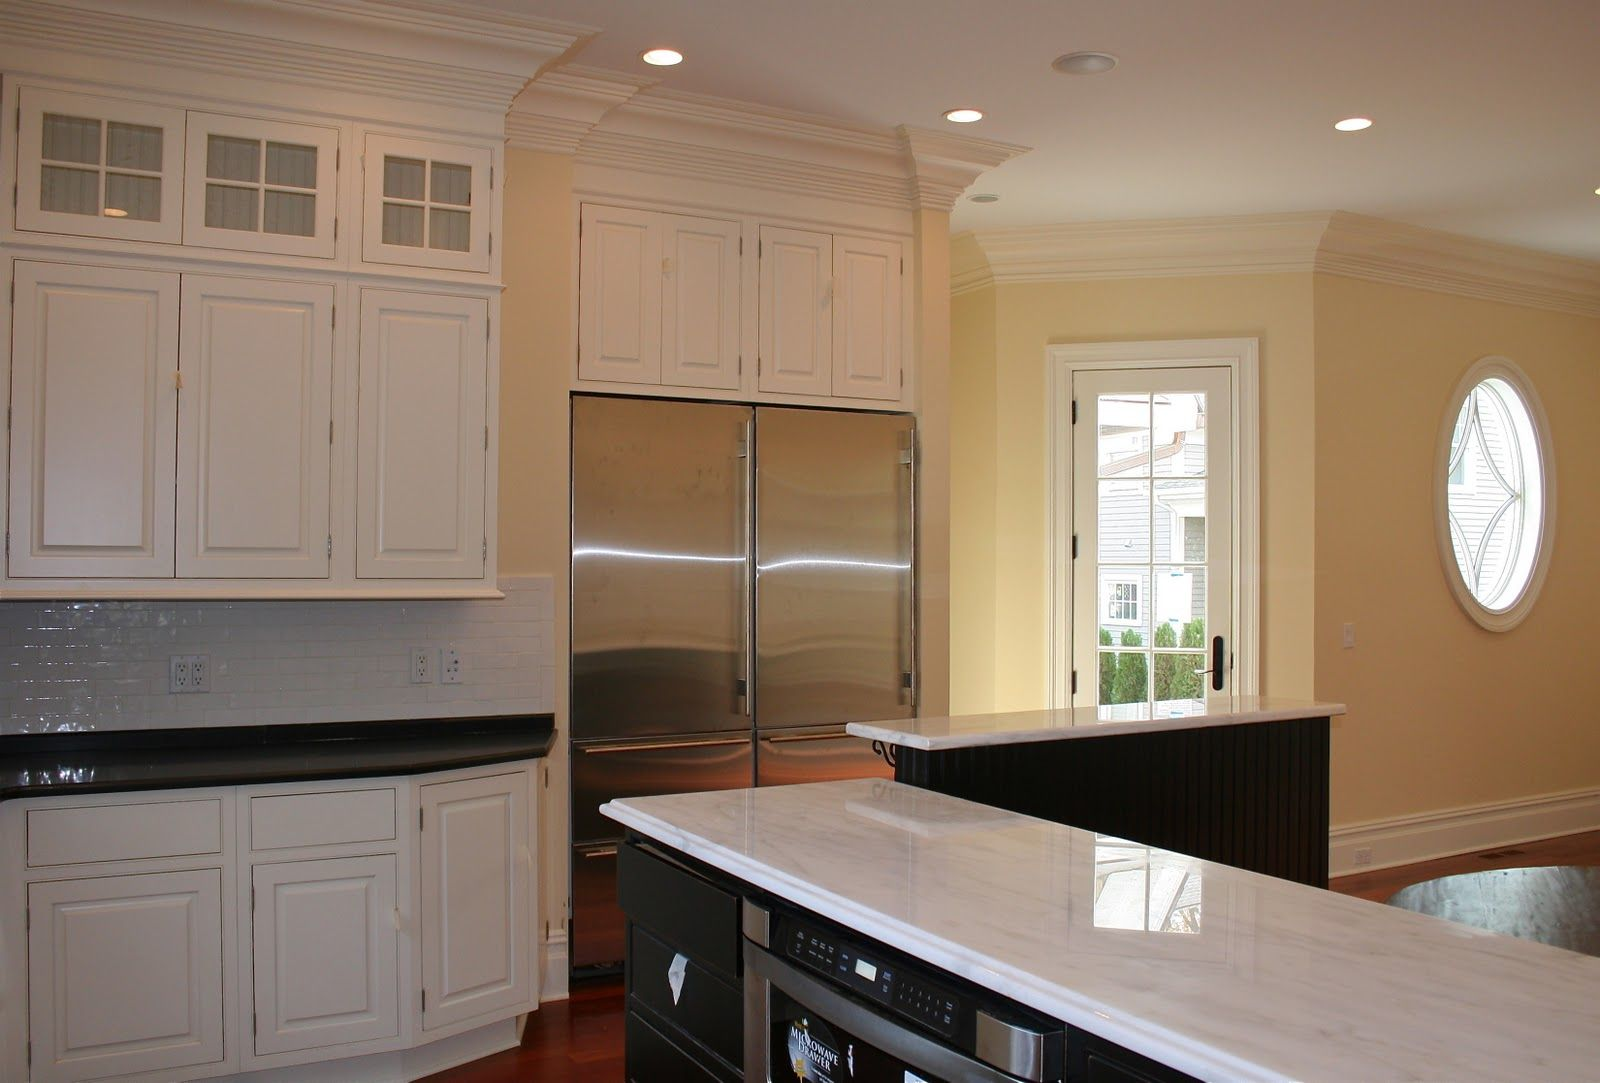 Hepplewhite ivory paint colors pinterest ivory for Ivory colored kitchen cabinets